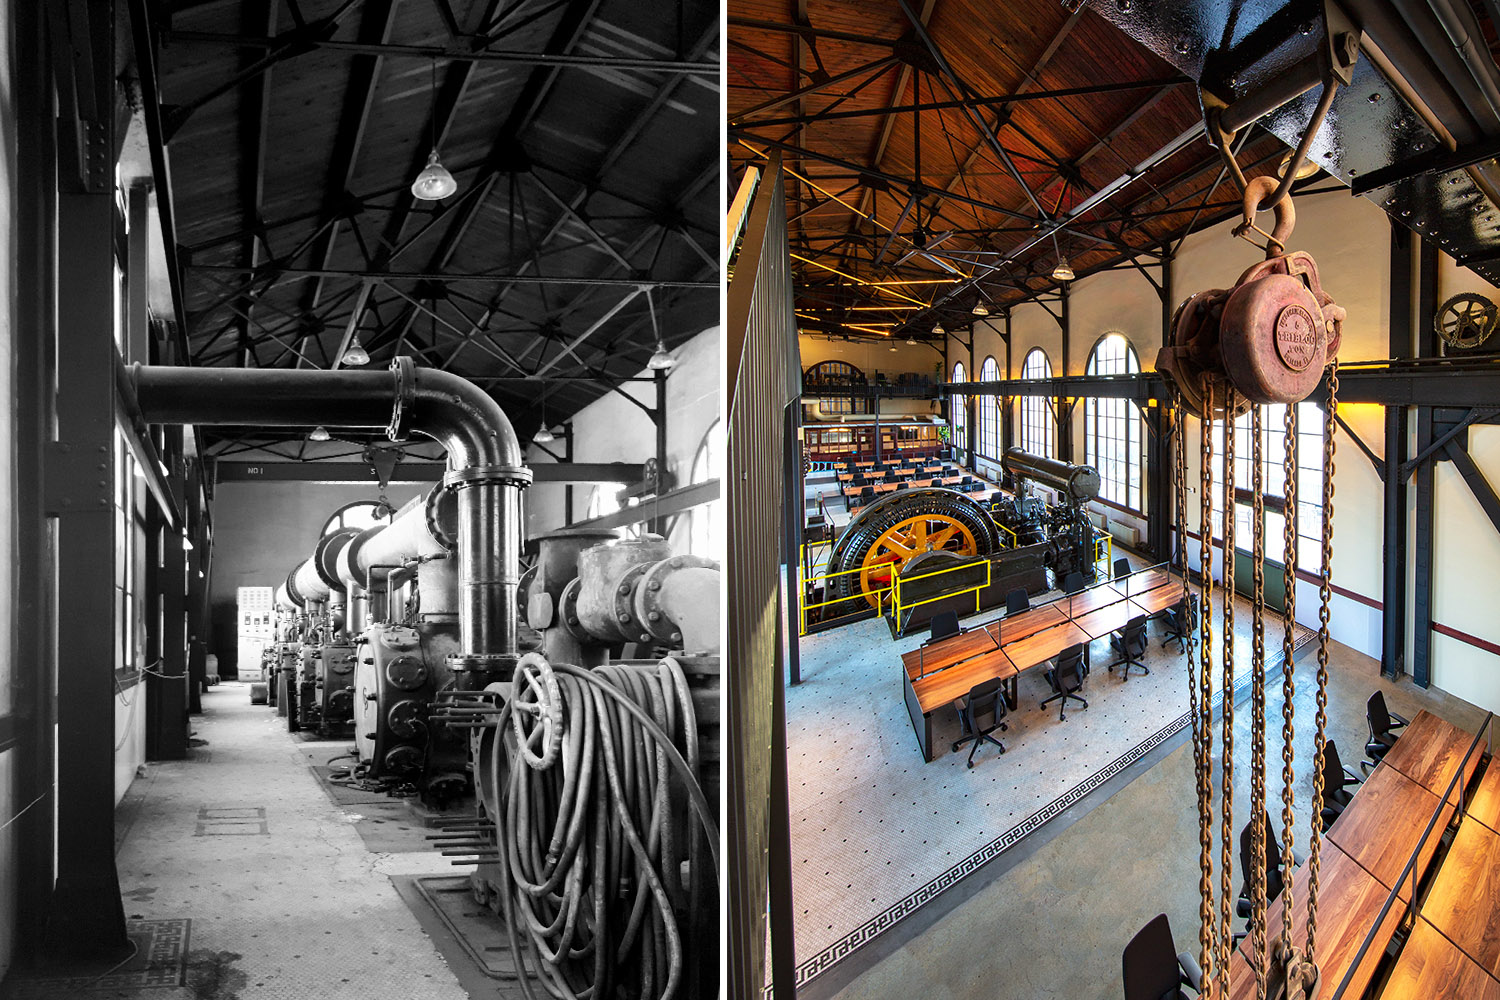 Elements of the building's industrial past (left) were preserved, such as a restored original compressor, gantry cranes, and pulleys (right). Right: Photograph by Billy Hustace}